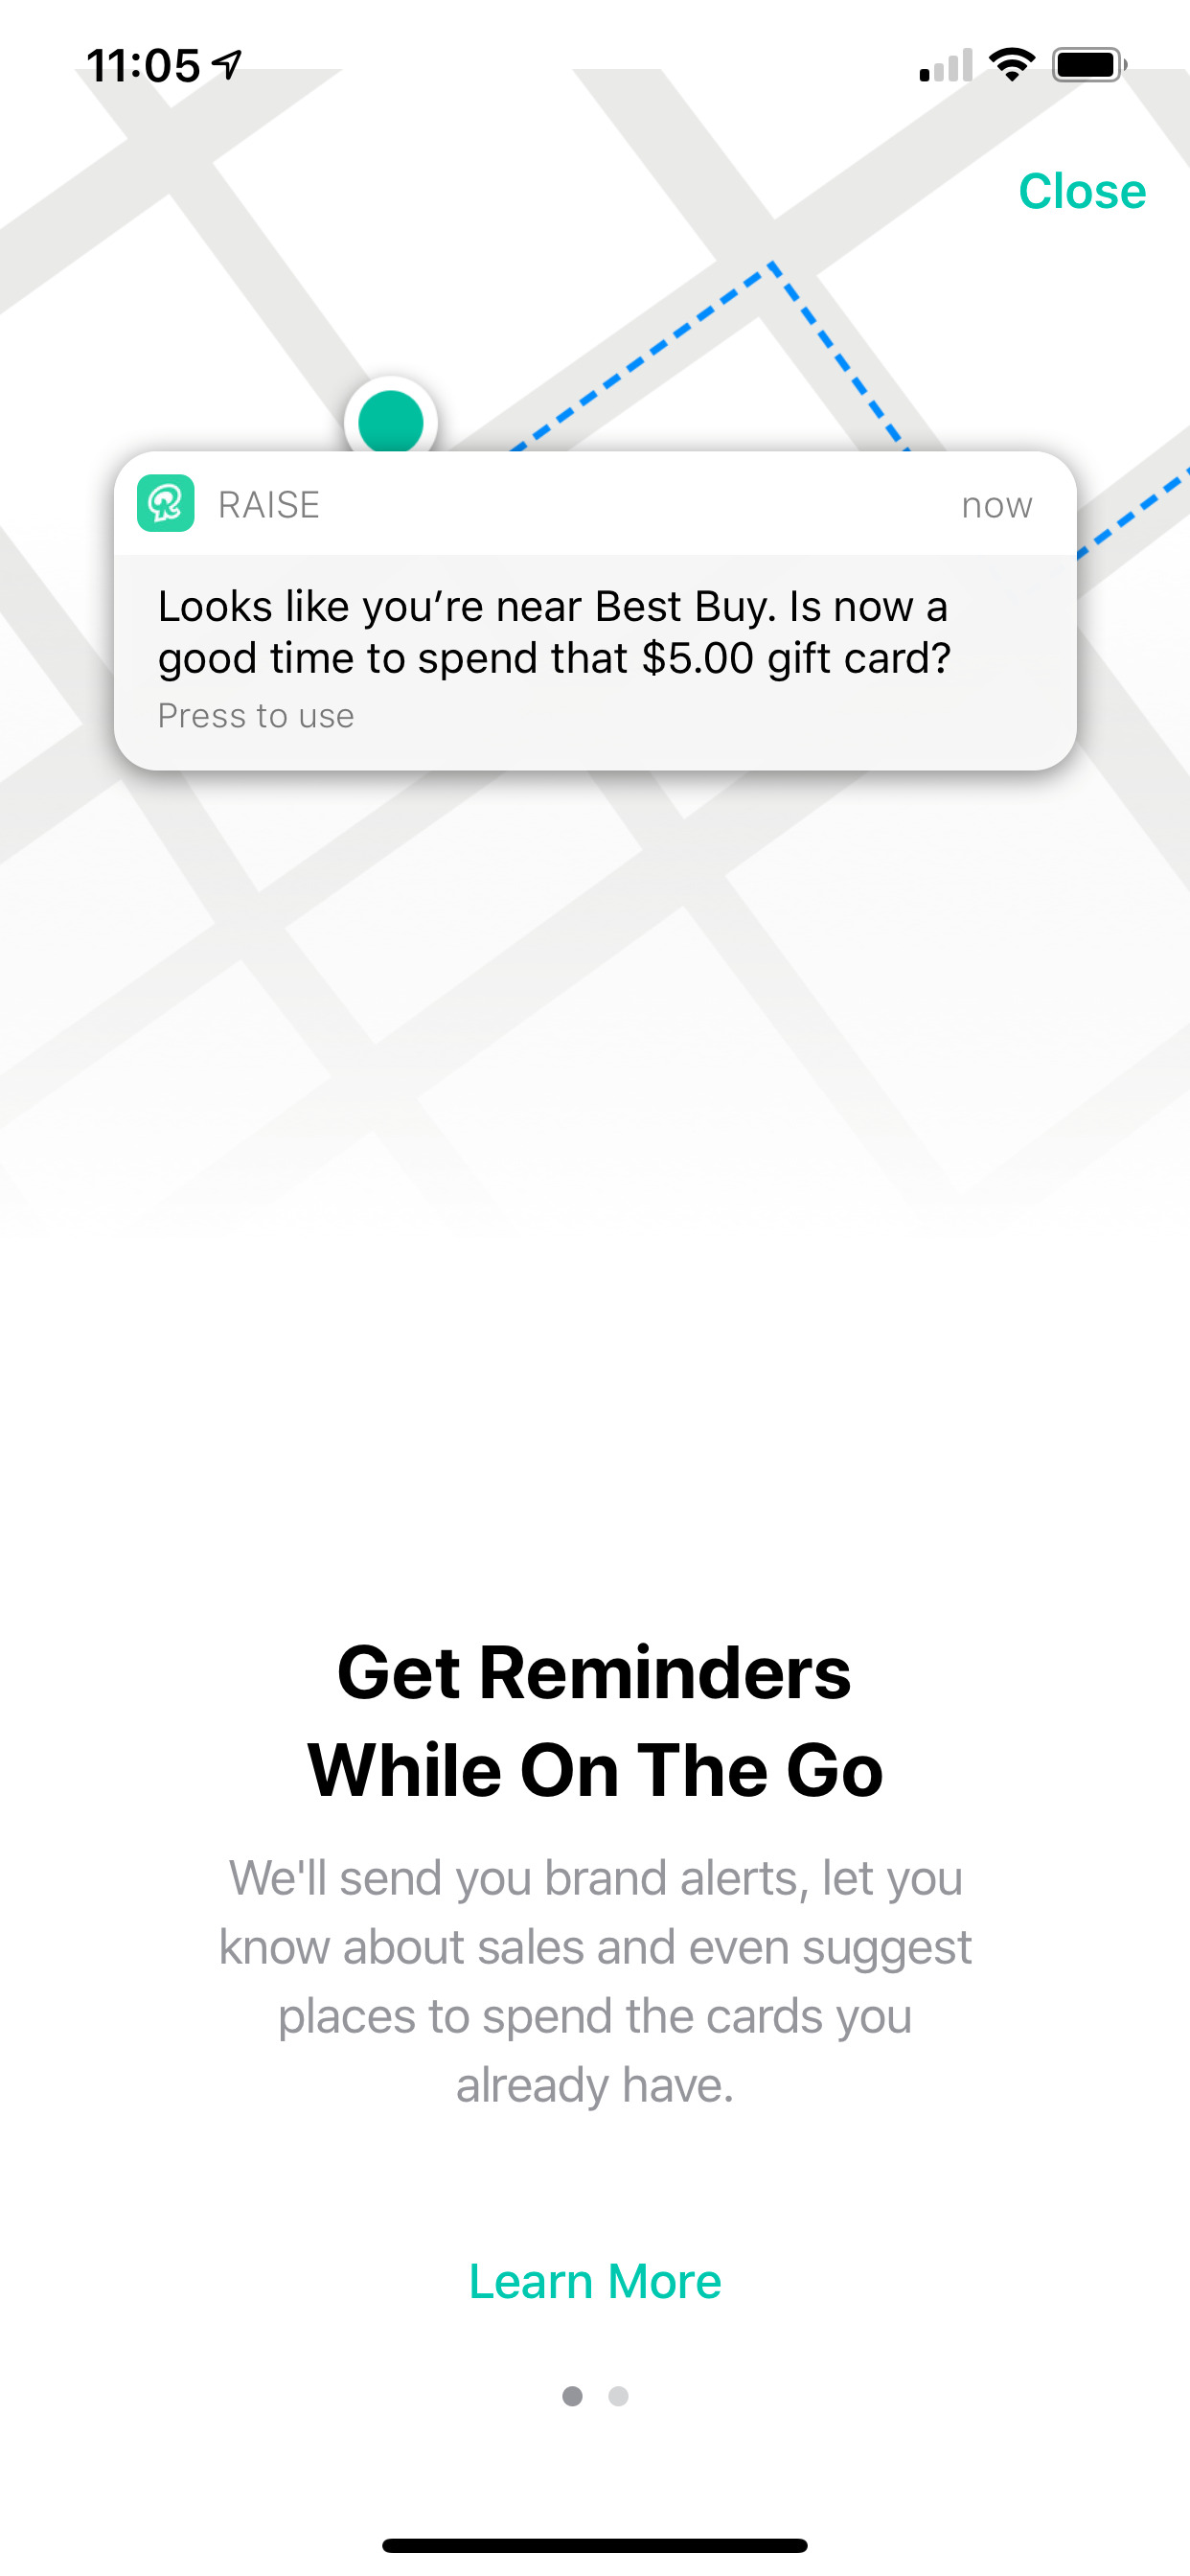 Example of App Design for iOS with the following features: permissions, notifications, text button, paging, background image. App by Raise (iPhone X)